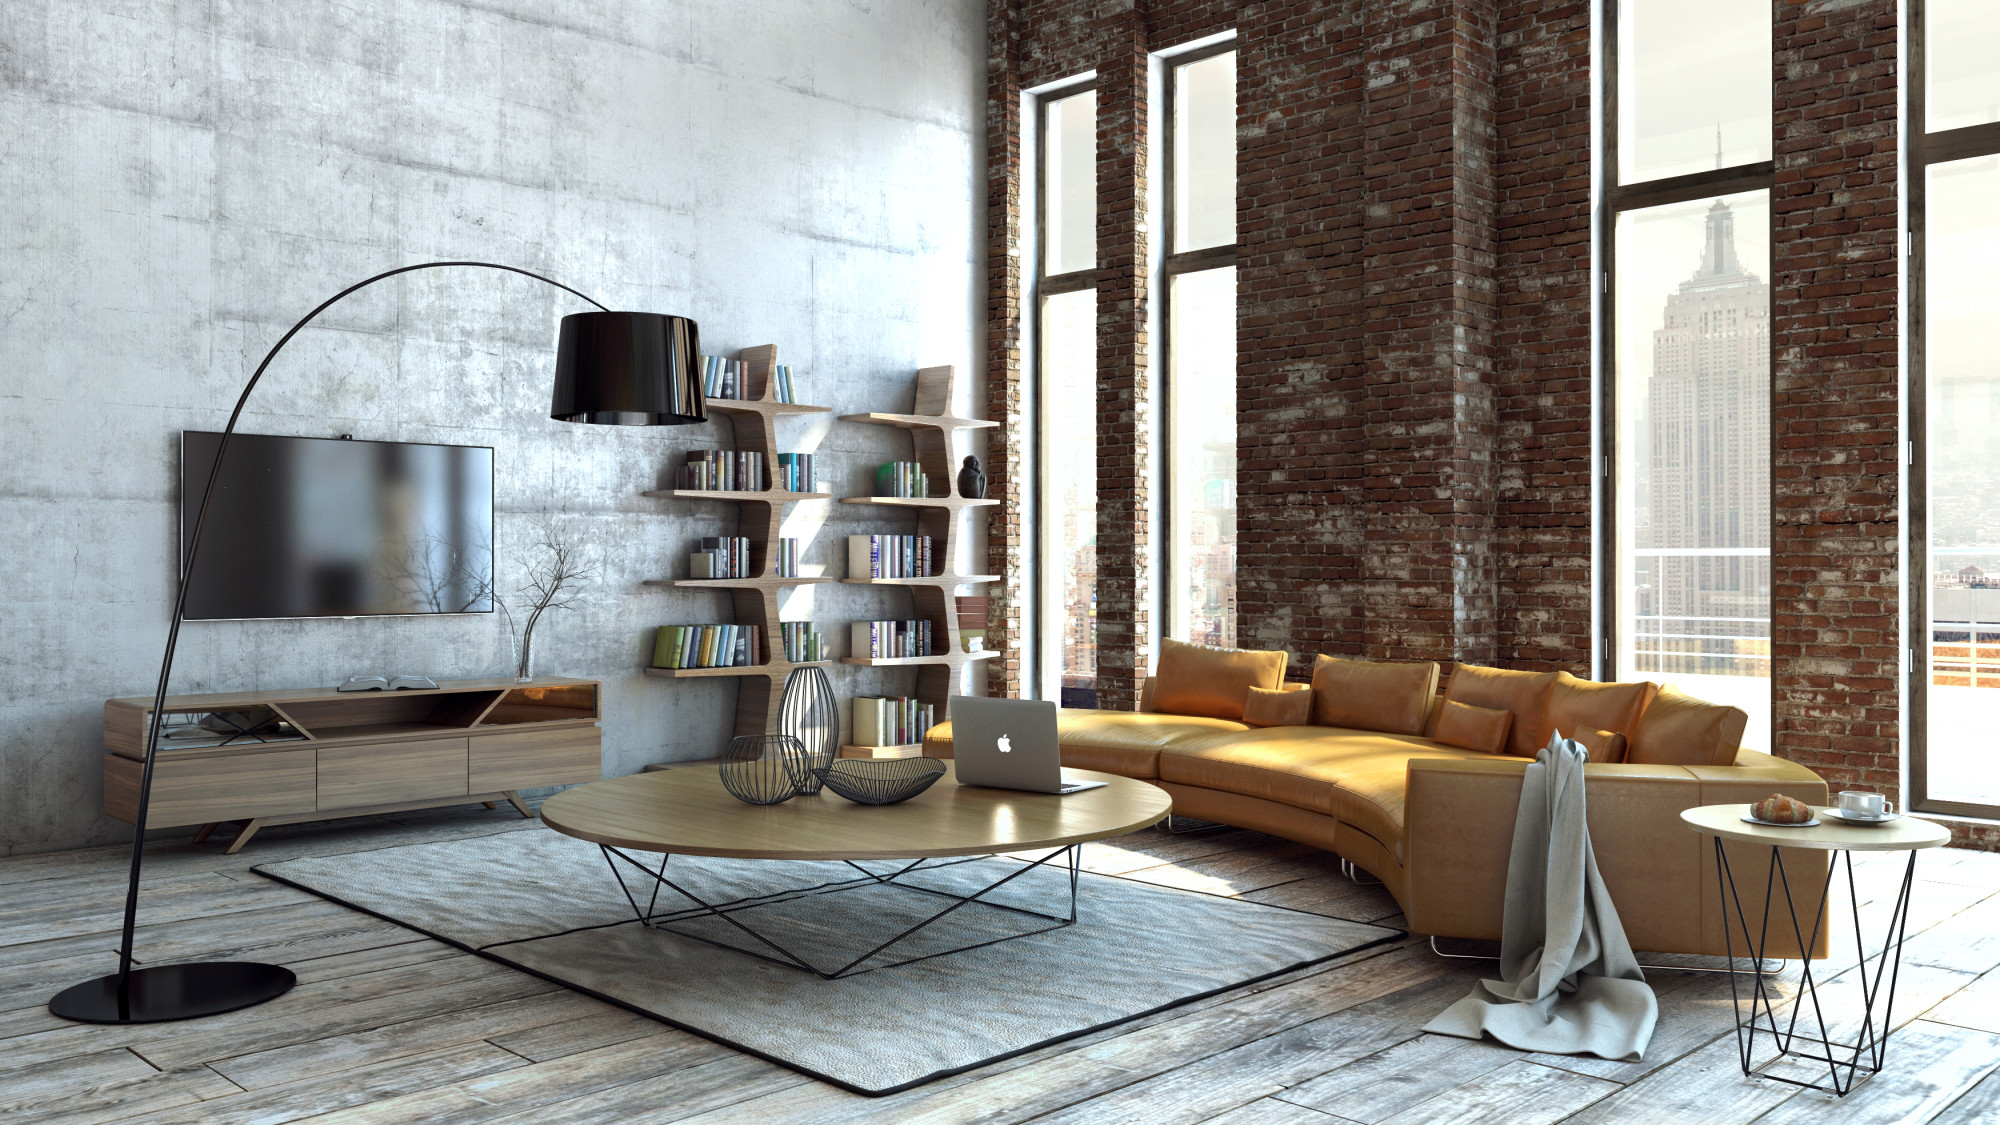 furniture for loft. Modern Furniture For Designing A Loft Apartment